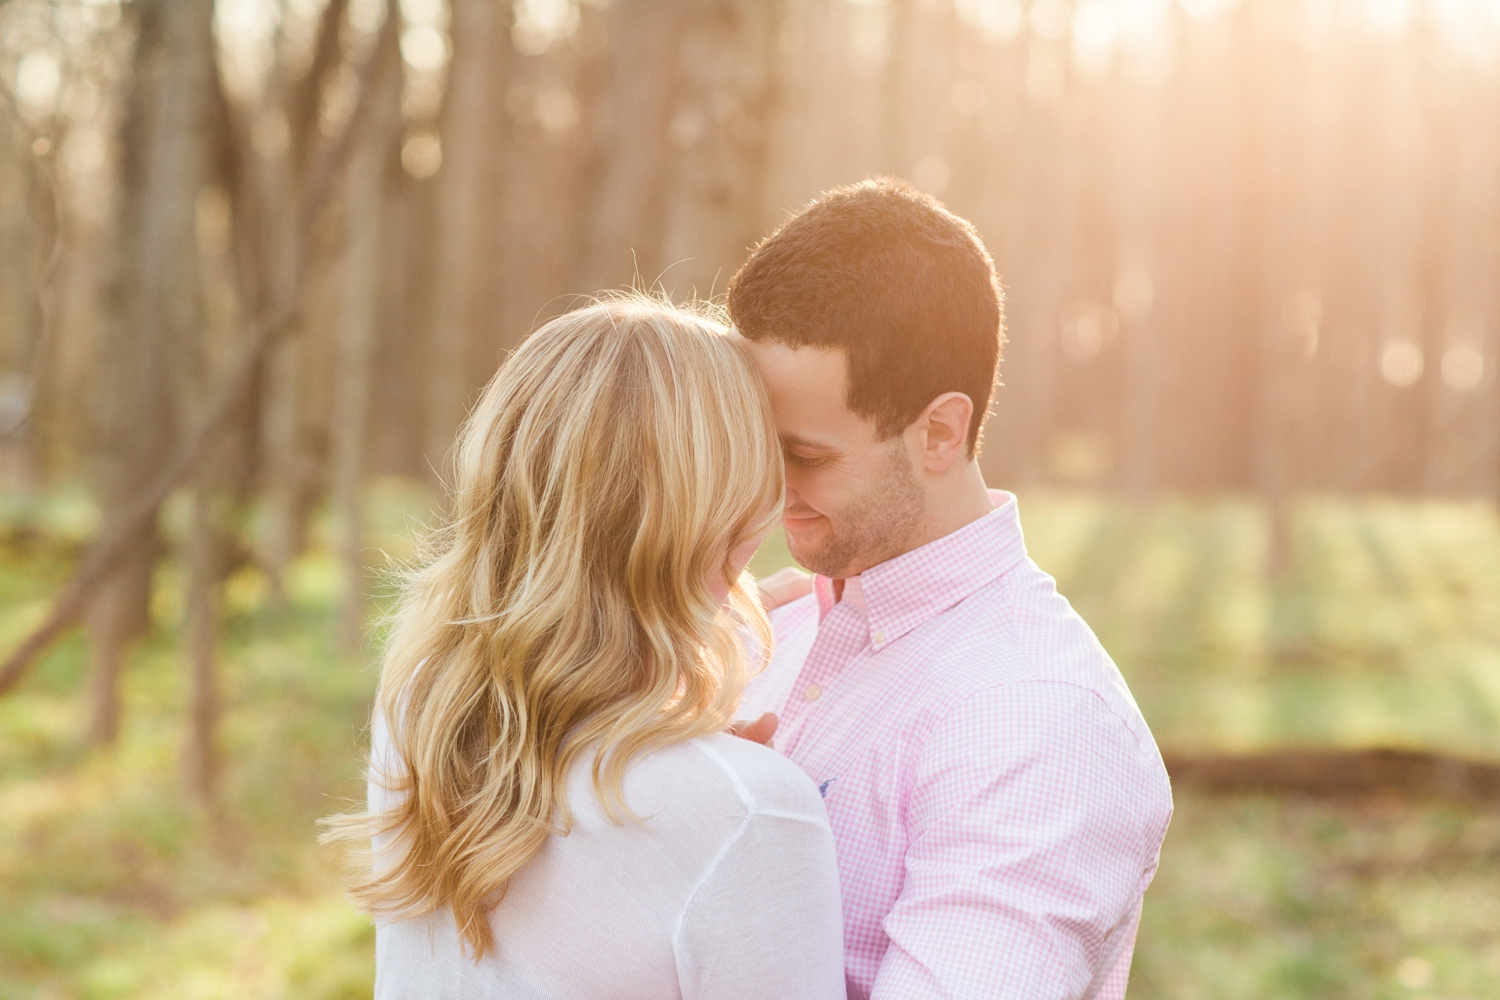 indianapolis_wedding_photographer_golden_hour_engagement_chloe_luka_photography_6122.jpg